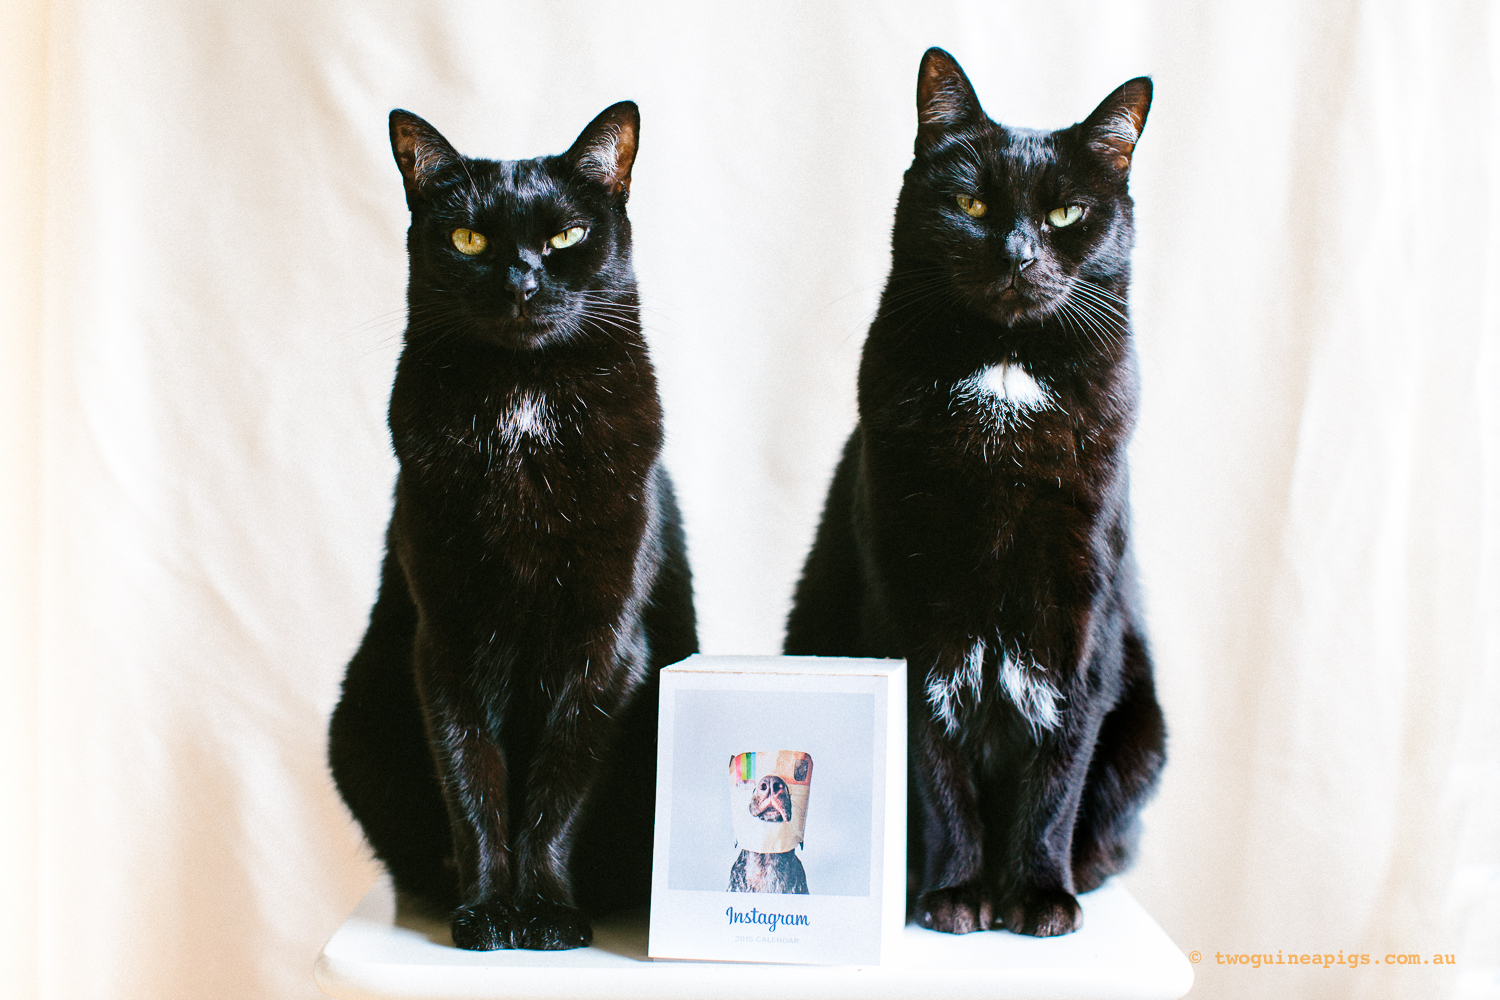 twoguineapigs_pet_photography_black_cats_instagram_communityfirst